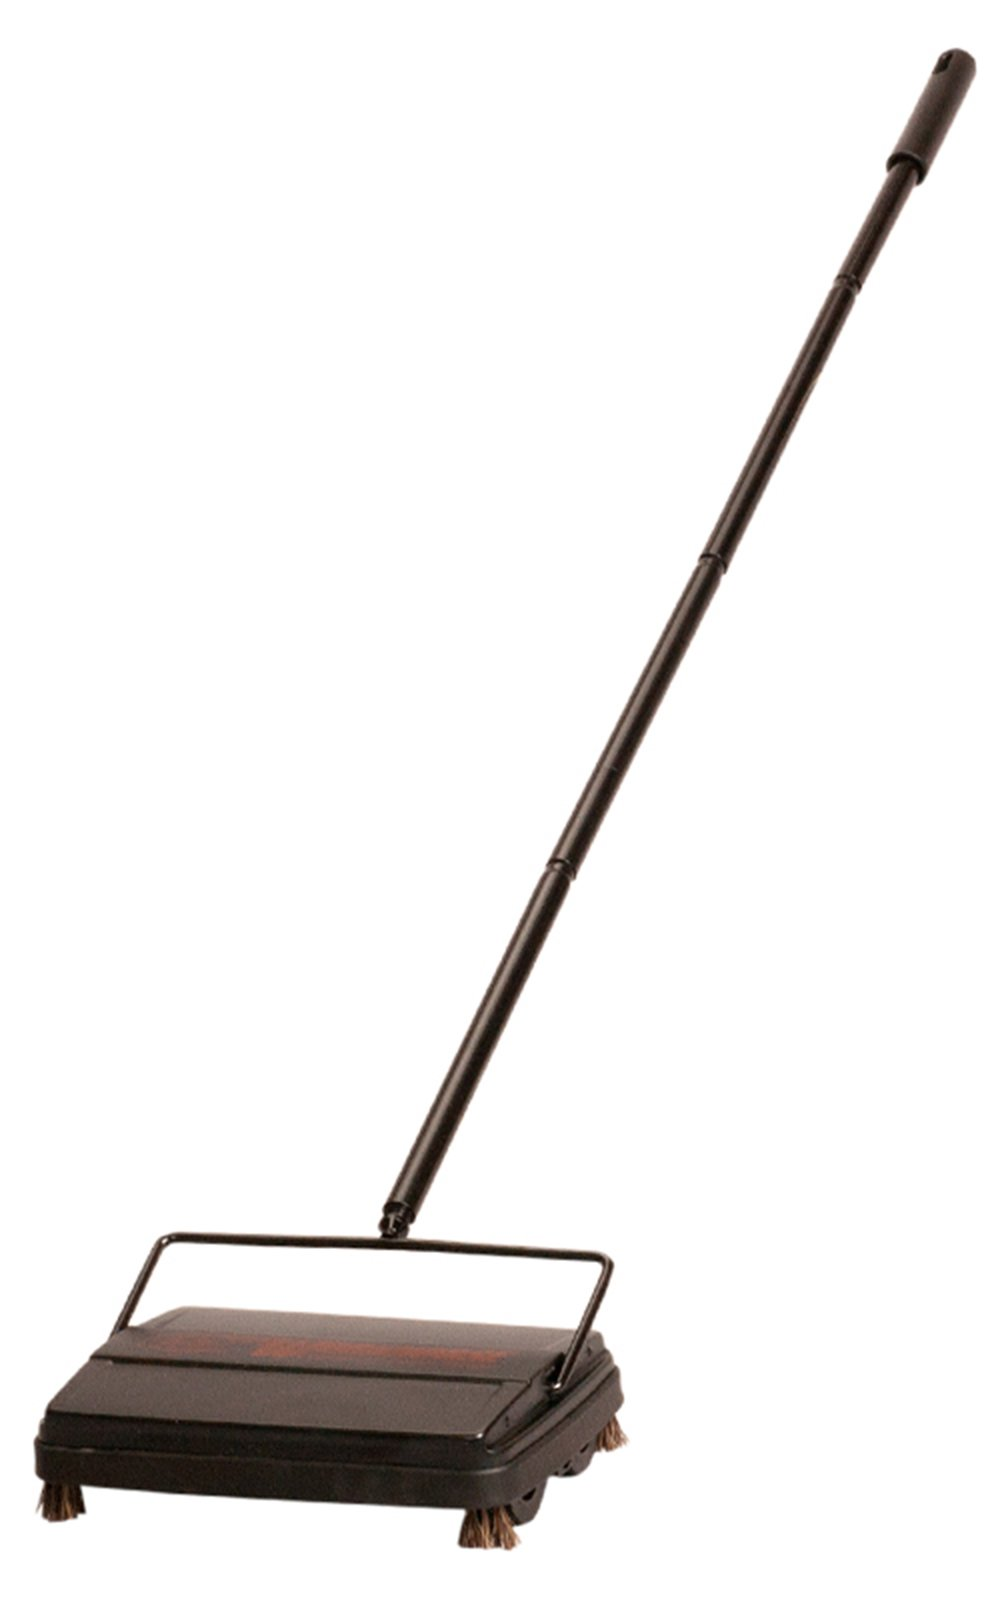 Fuller Commercial Products 39357 Workhorse Carpet Sweeper, 4 Piece Handle with Vinyl Brush